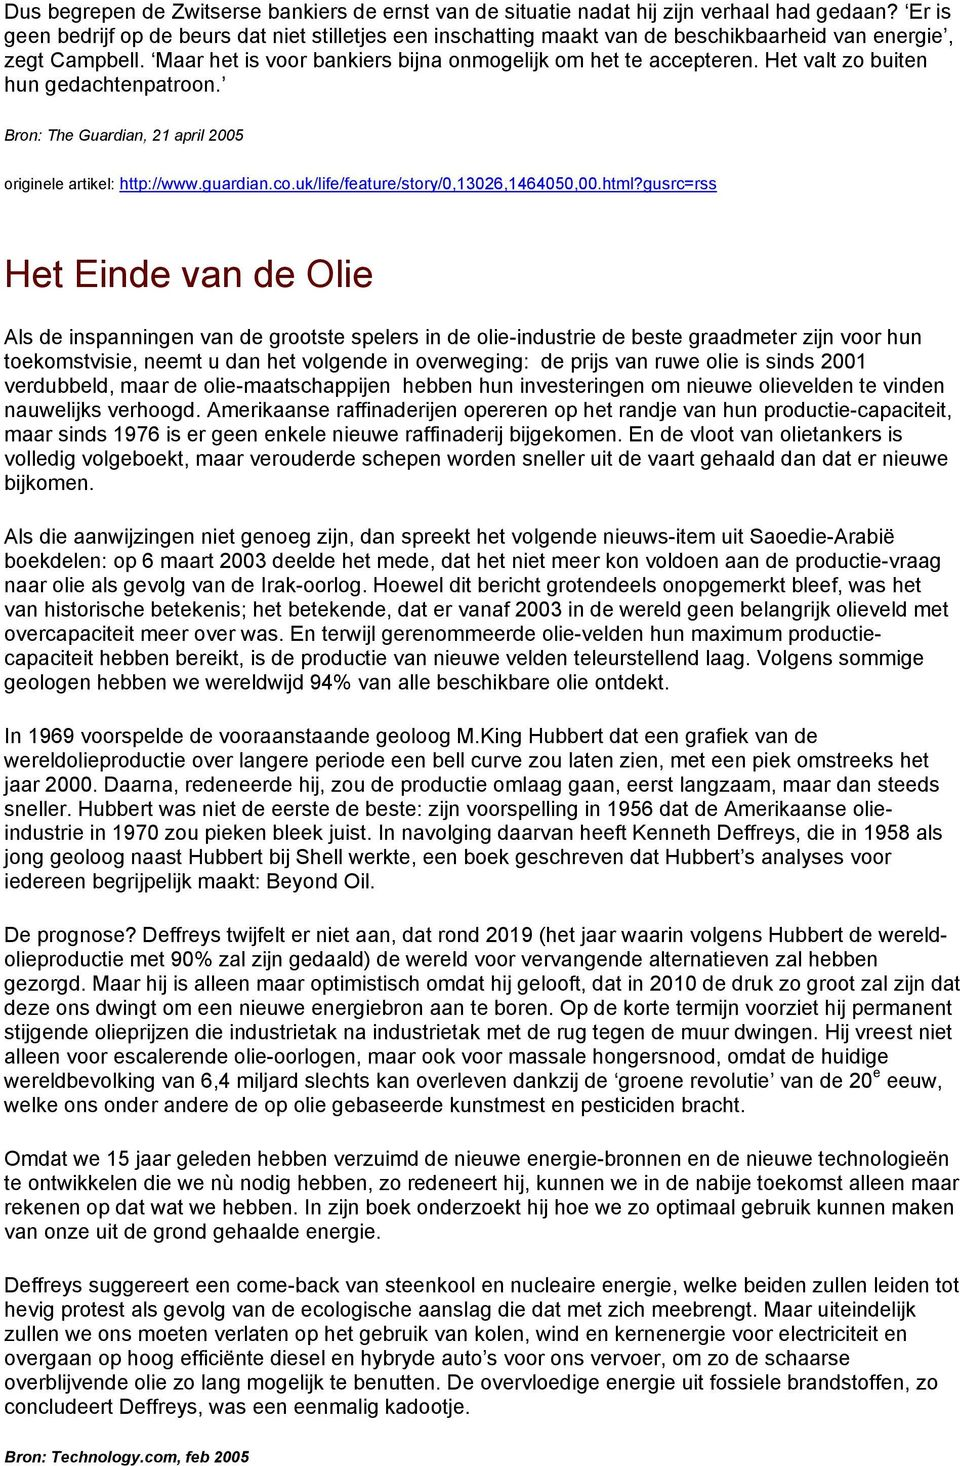 Het valt zo buiten hun gedachtenpatroon. Bron: The Guardian, 21 april 2005 originele artikel: http://www.guardian.co.uk/life/feature/story/0,13026,1464050,00.html?